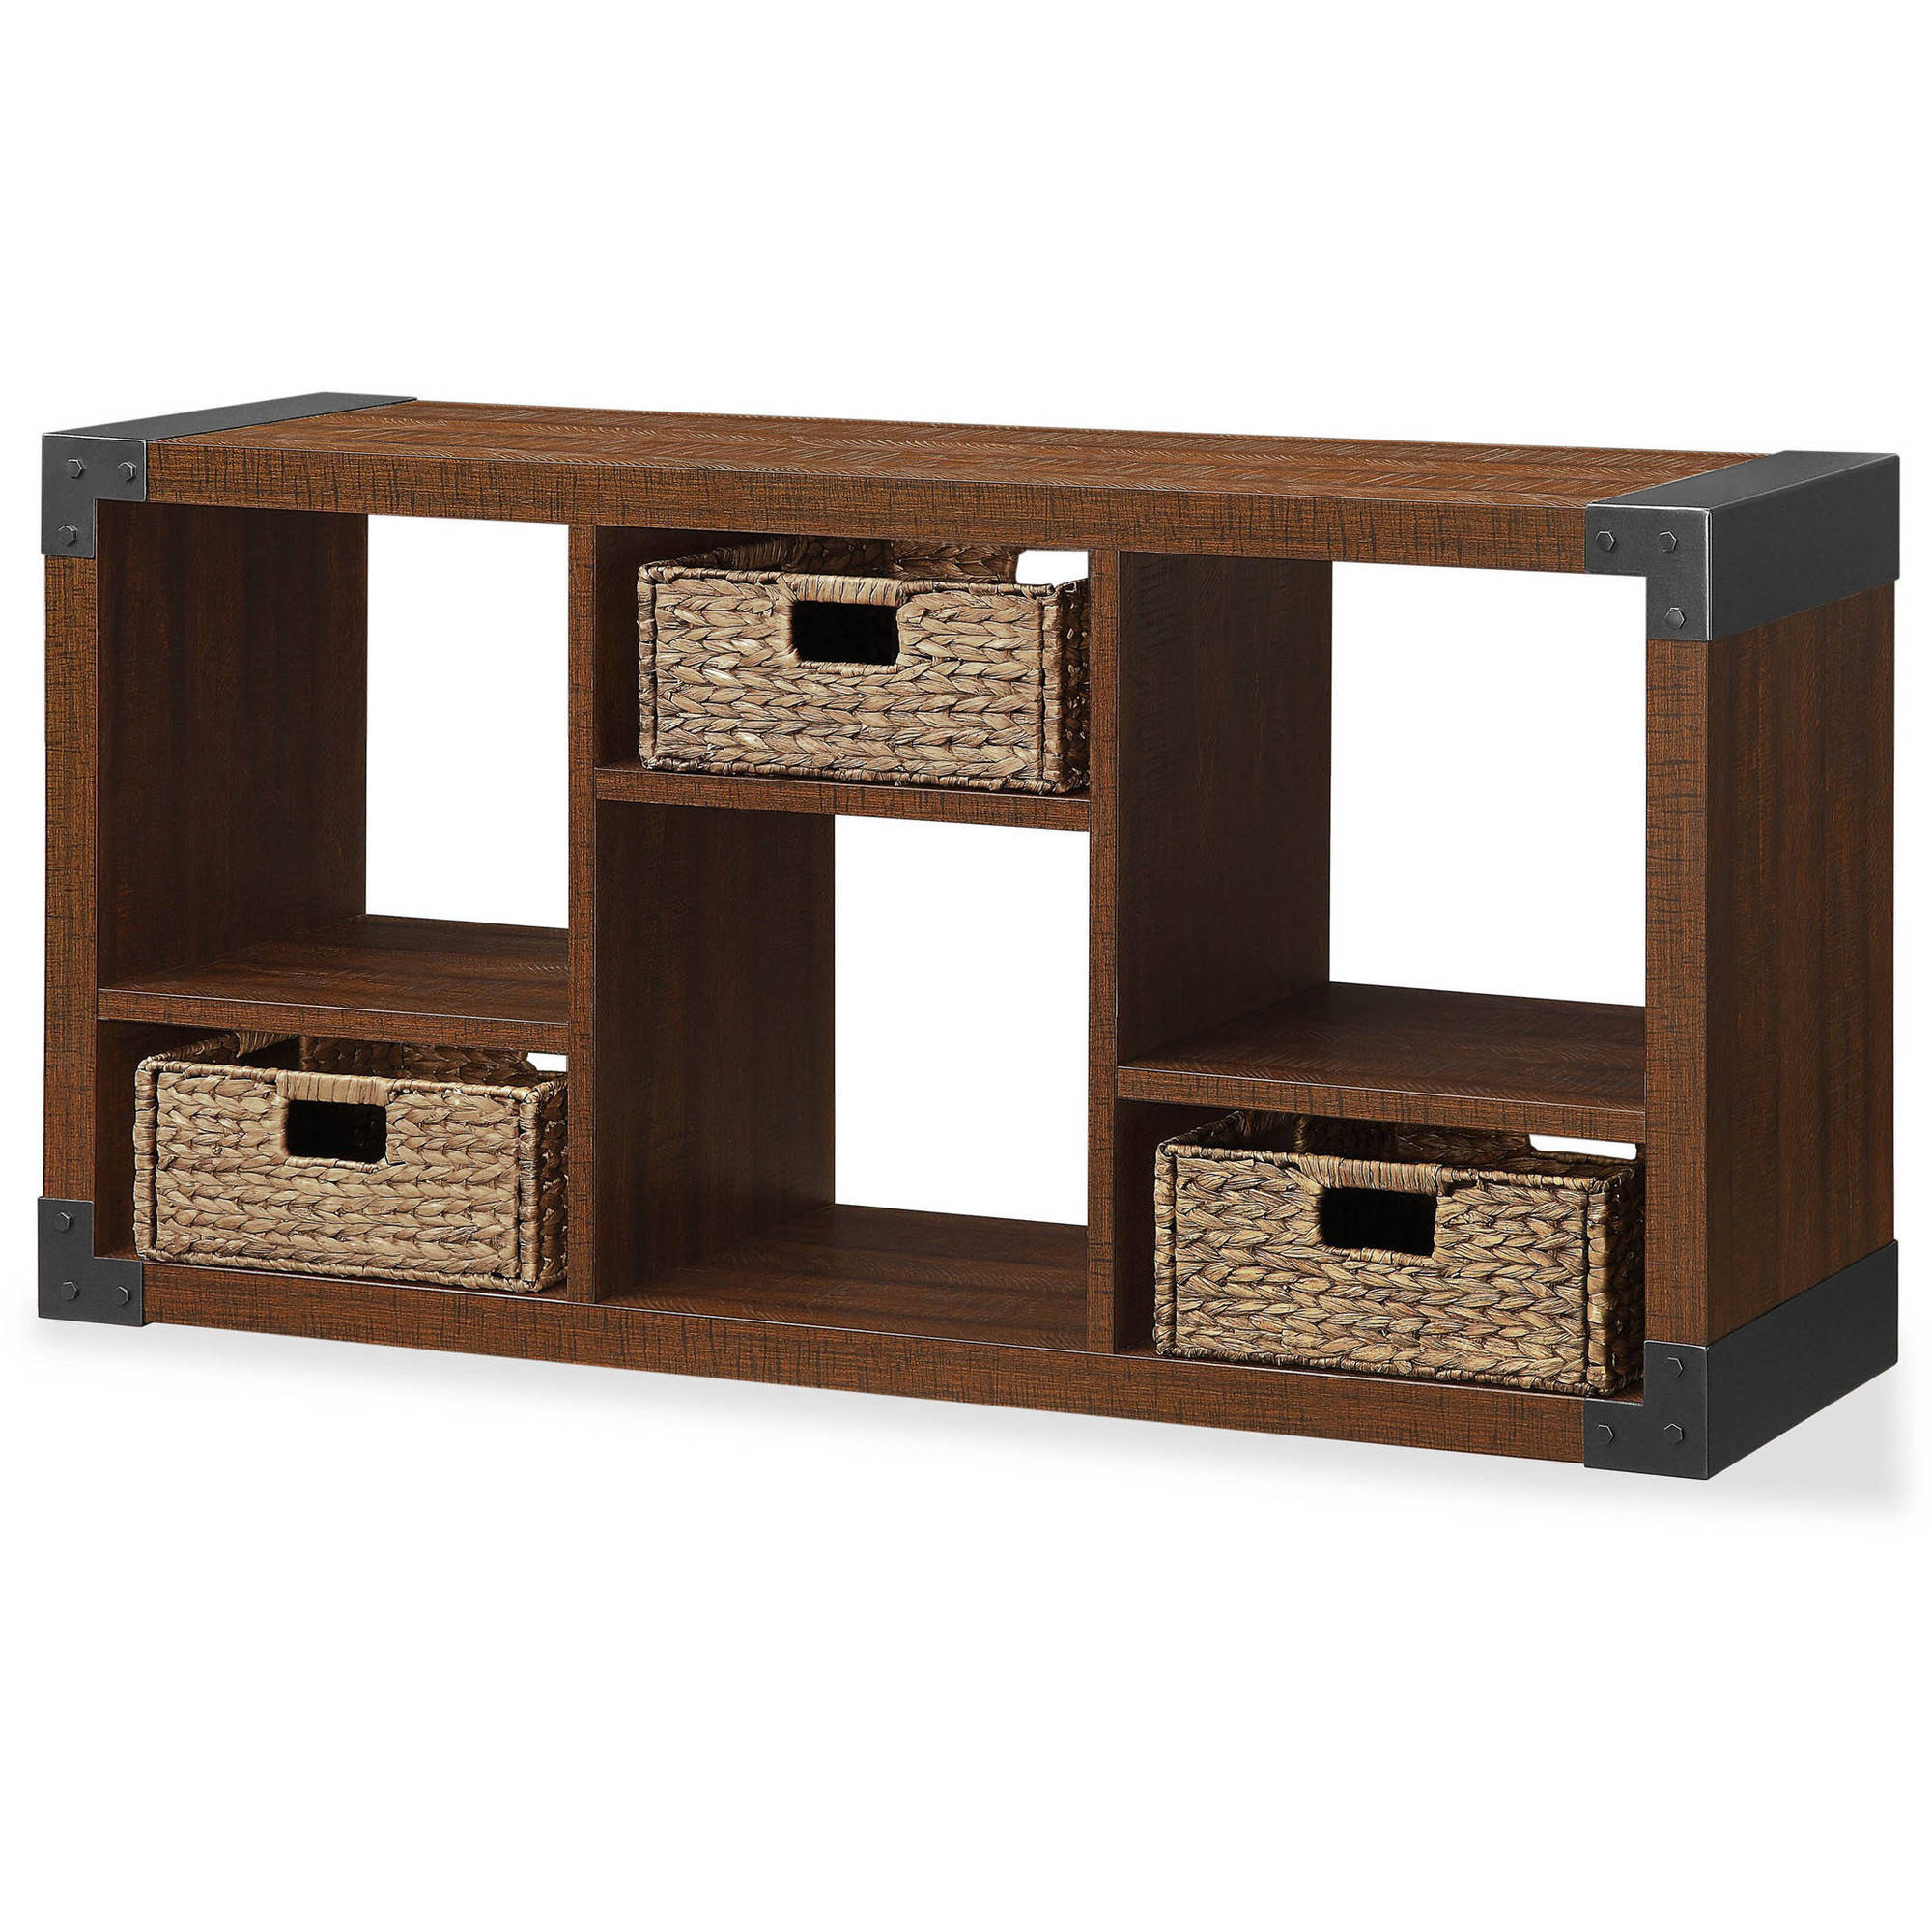 Landon TV Stand with Cube Organizer for Flat Panel TVs up to 45""